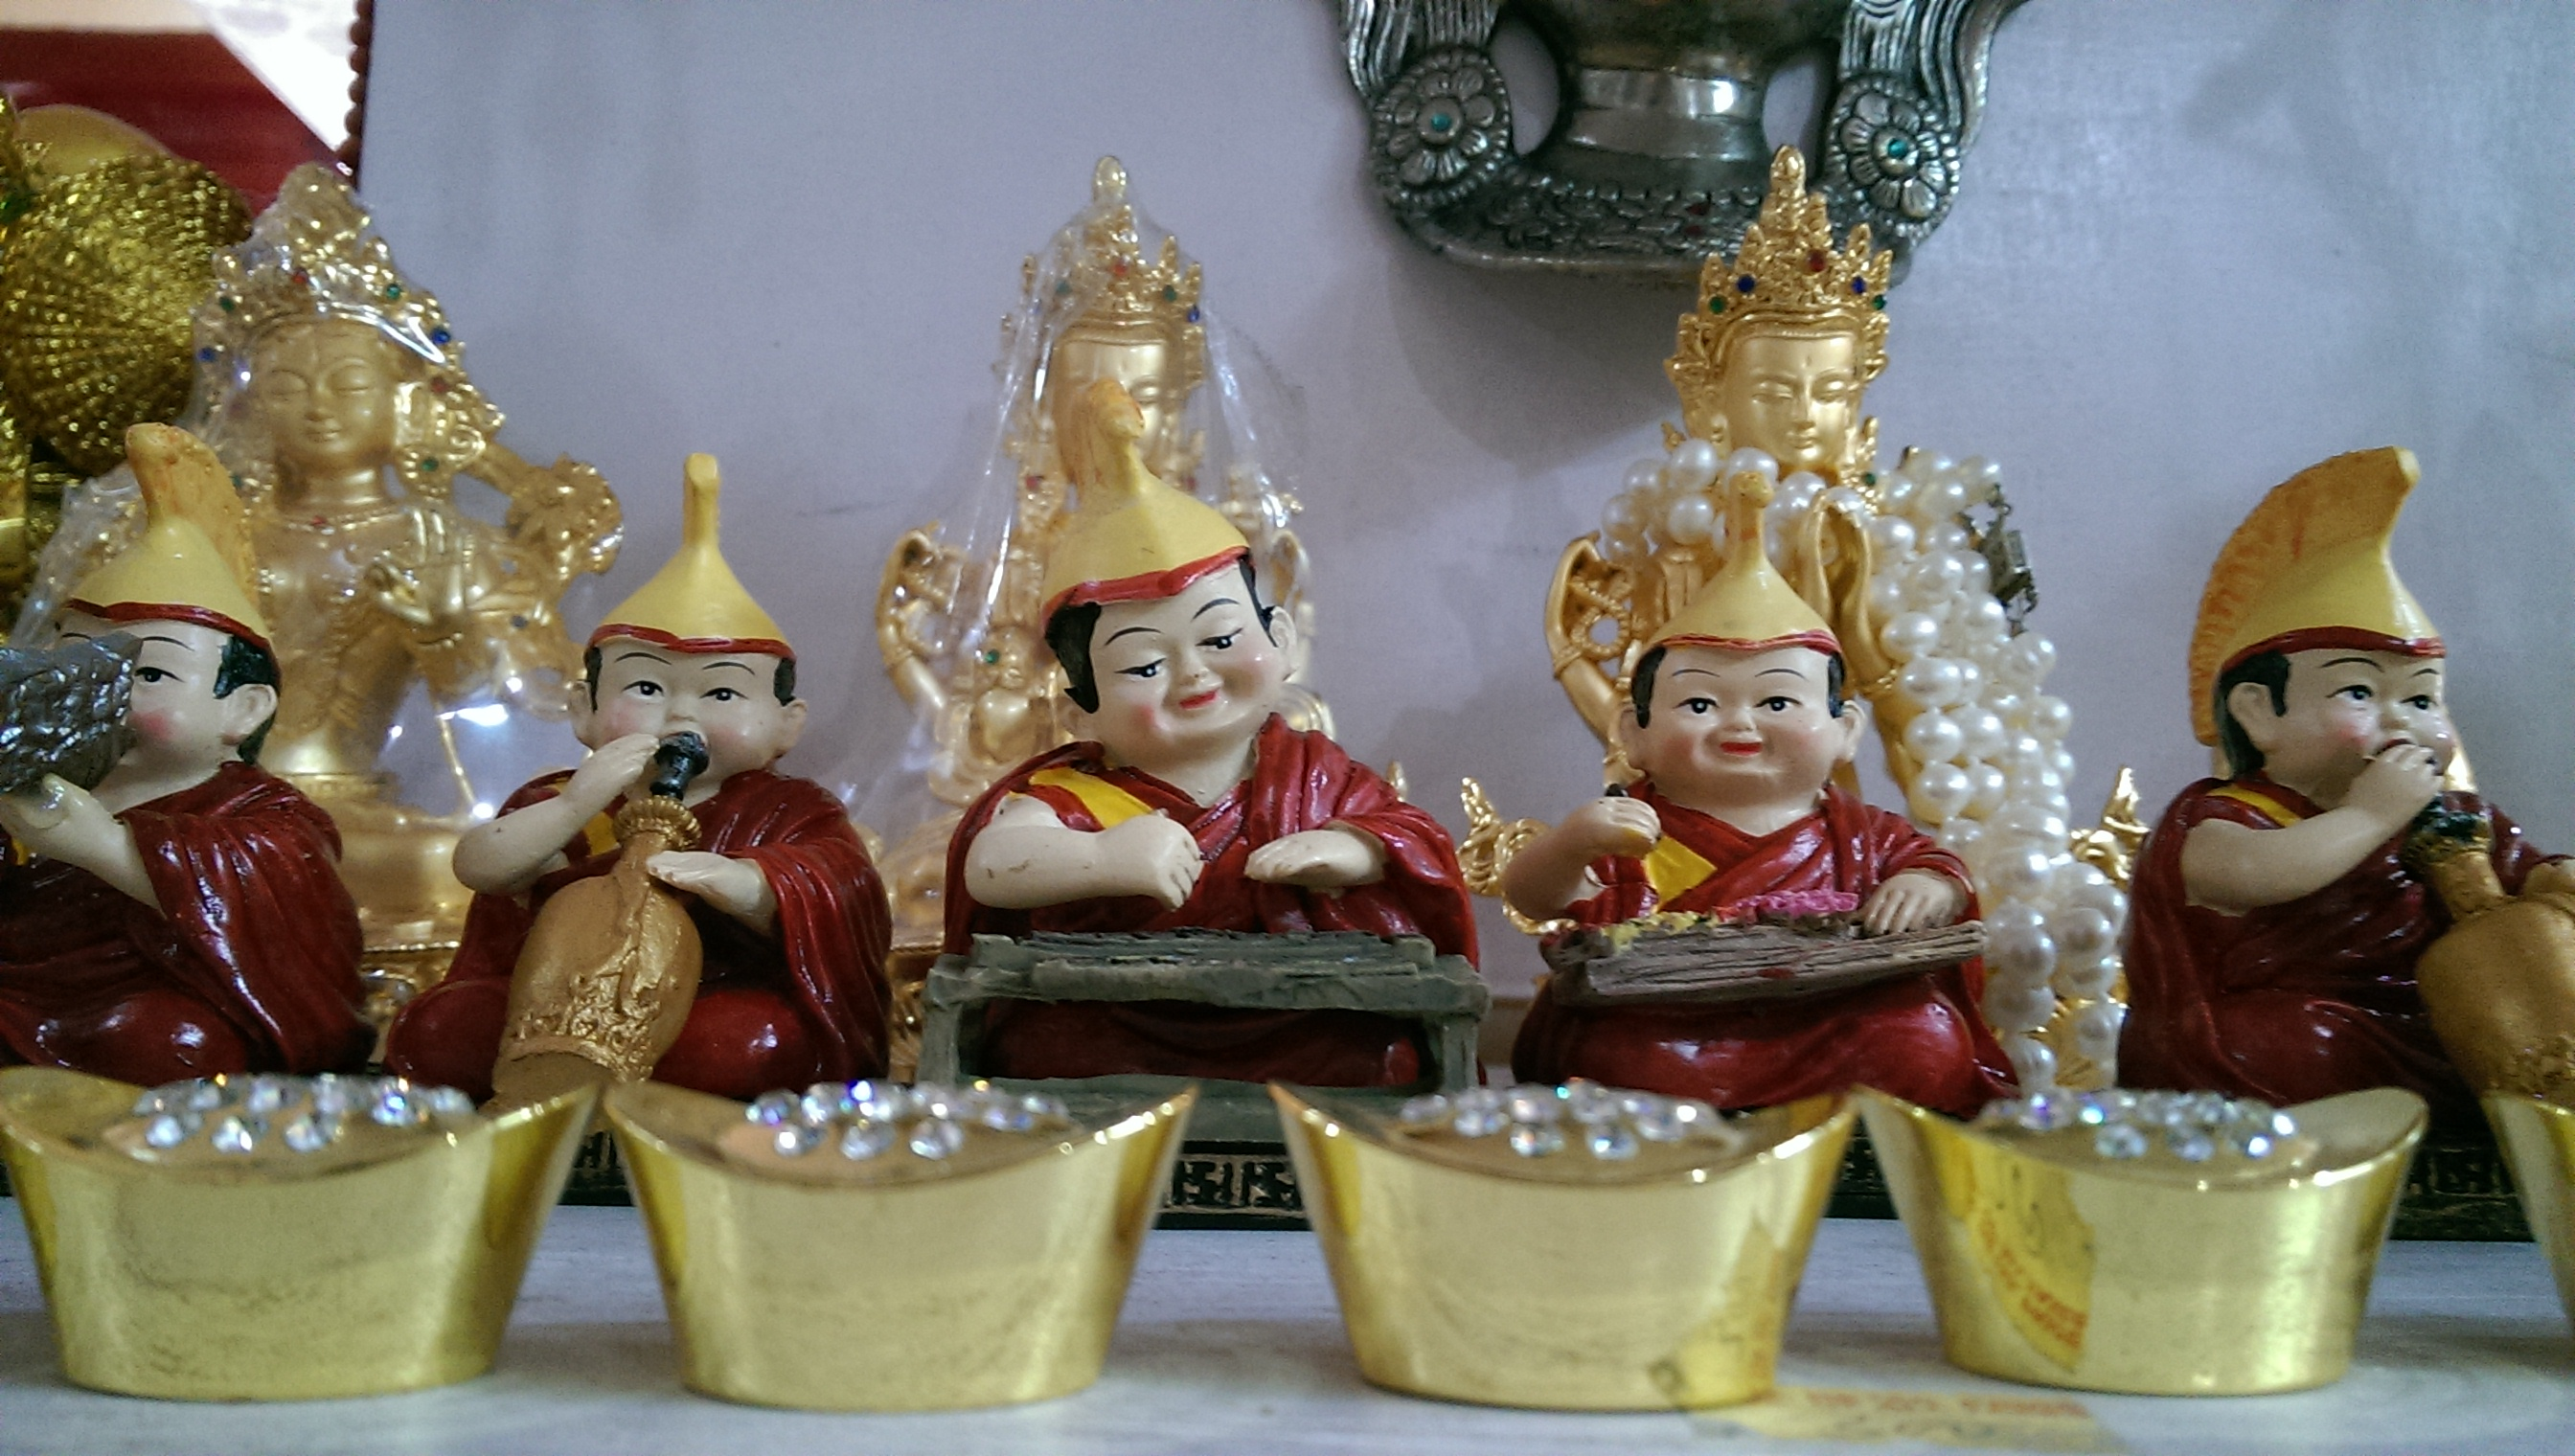 Monk dolls at Thiksey Monastery shop